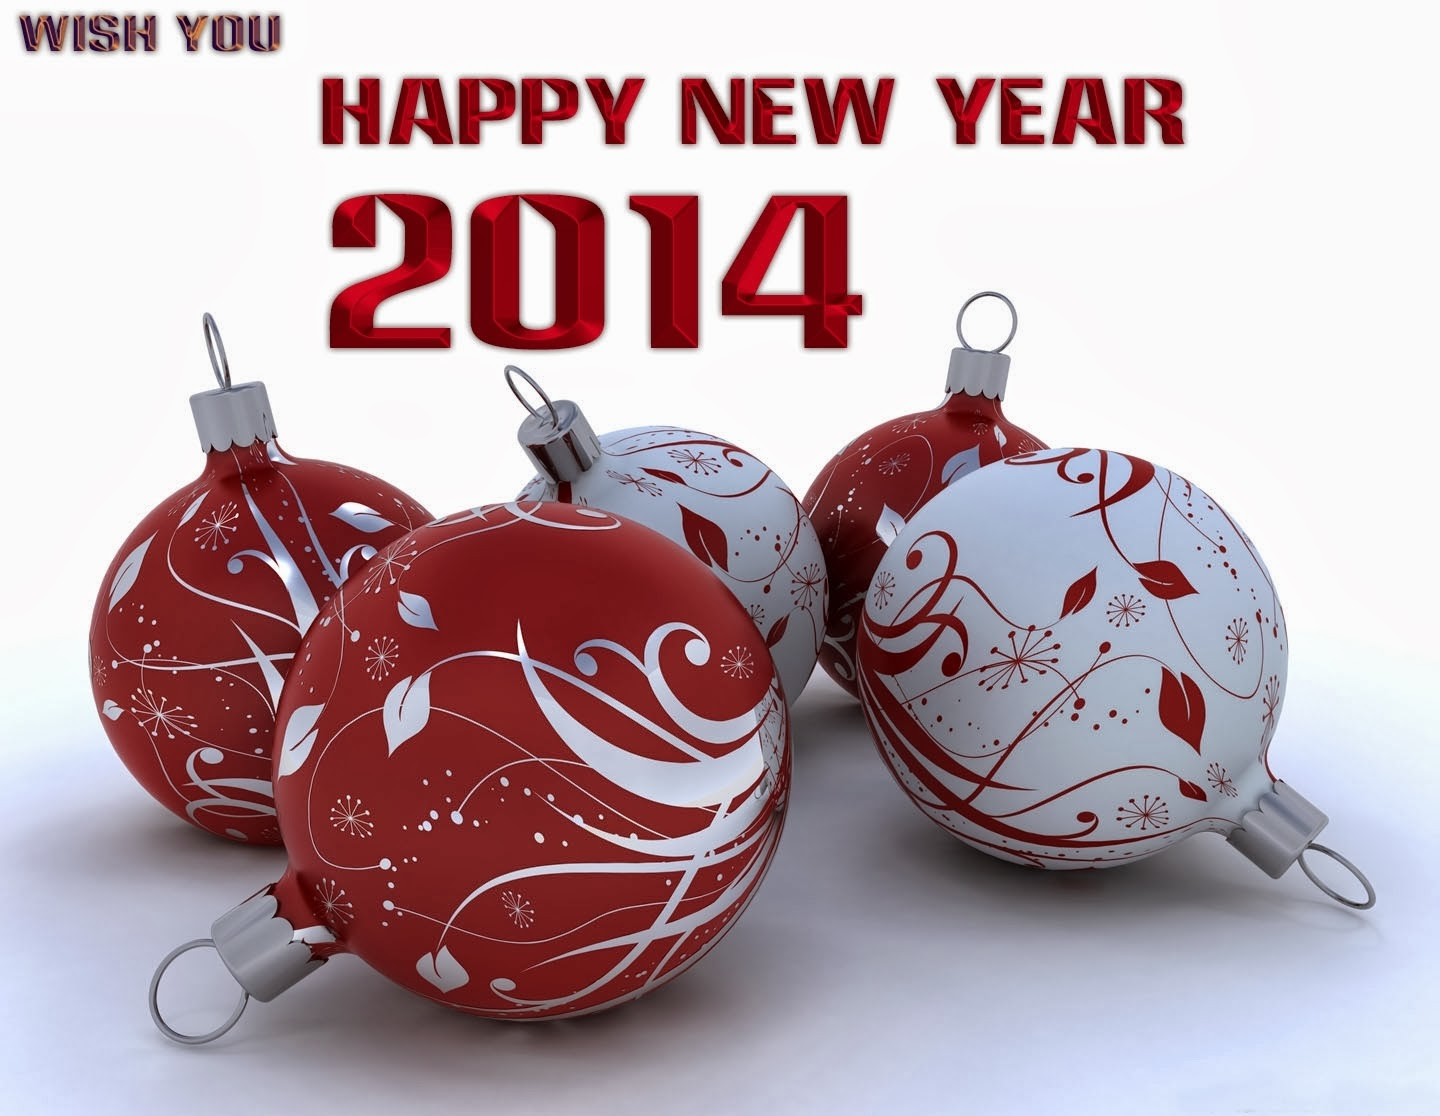 Happy New Year Quotes 2014 Happy New Year Wishes Quotes For.9 Sinhala New Year Greetings Cards 2014